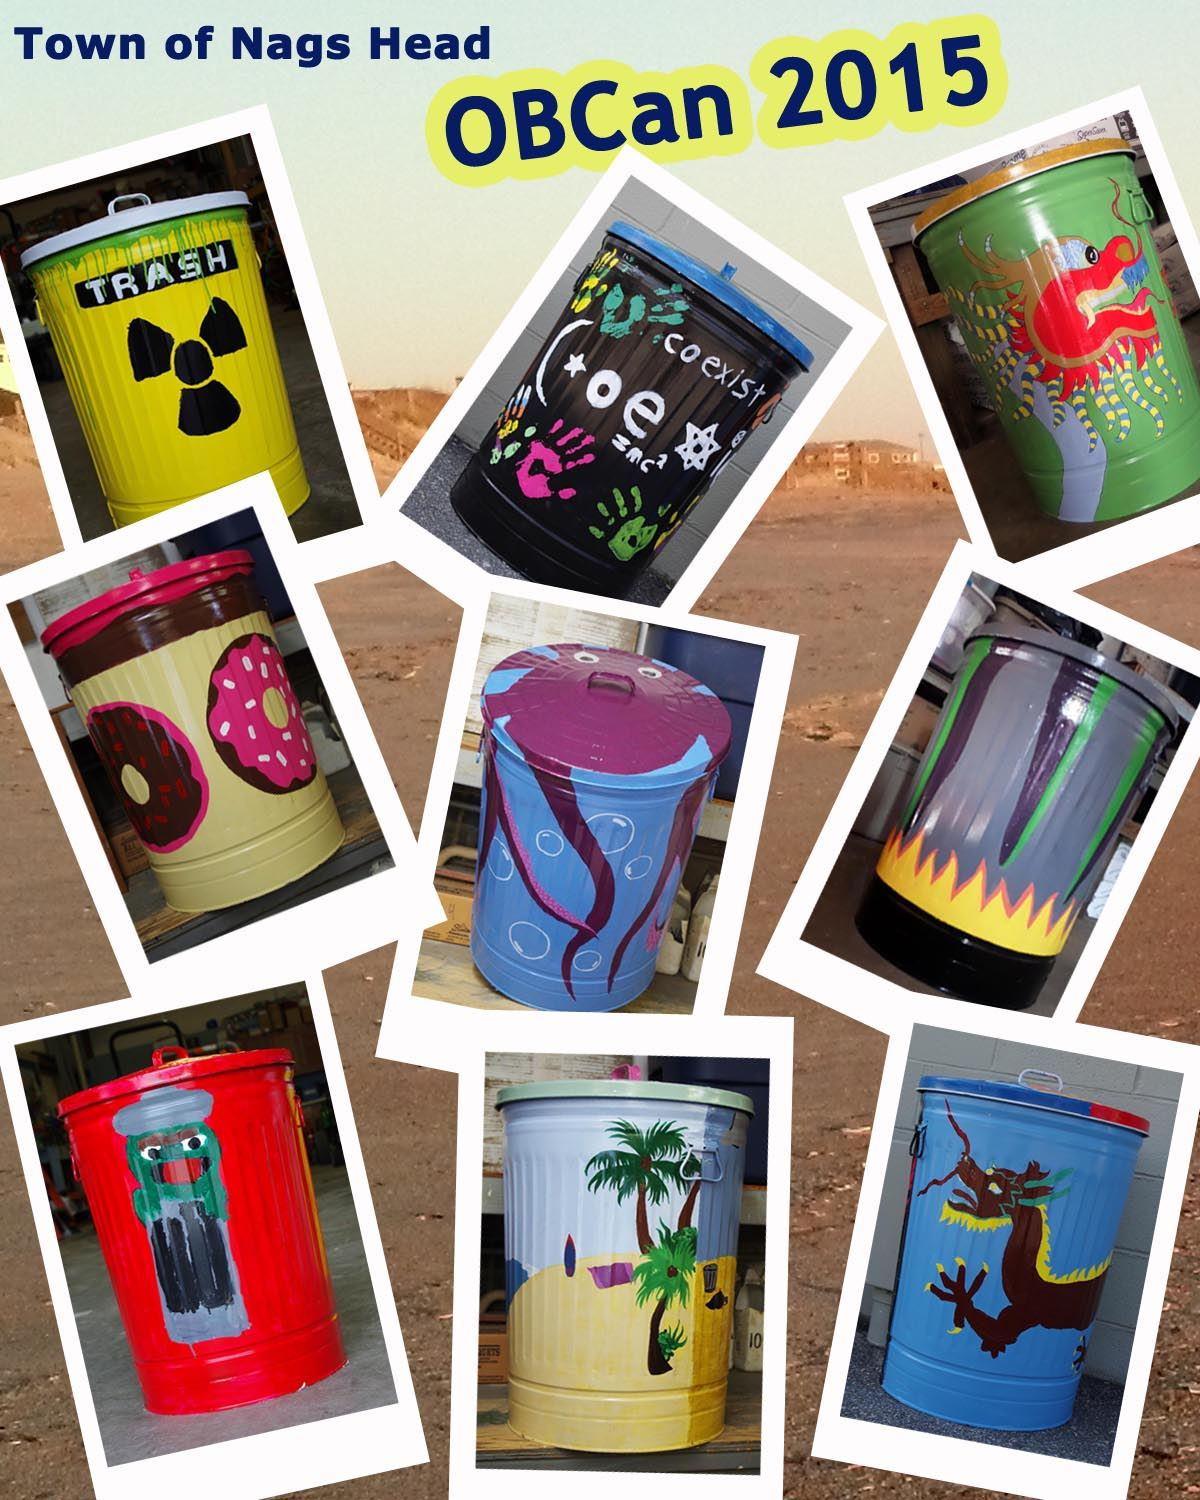 Trashcans Painted for OBCan 2015